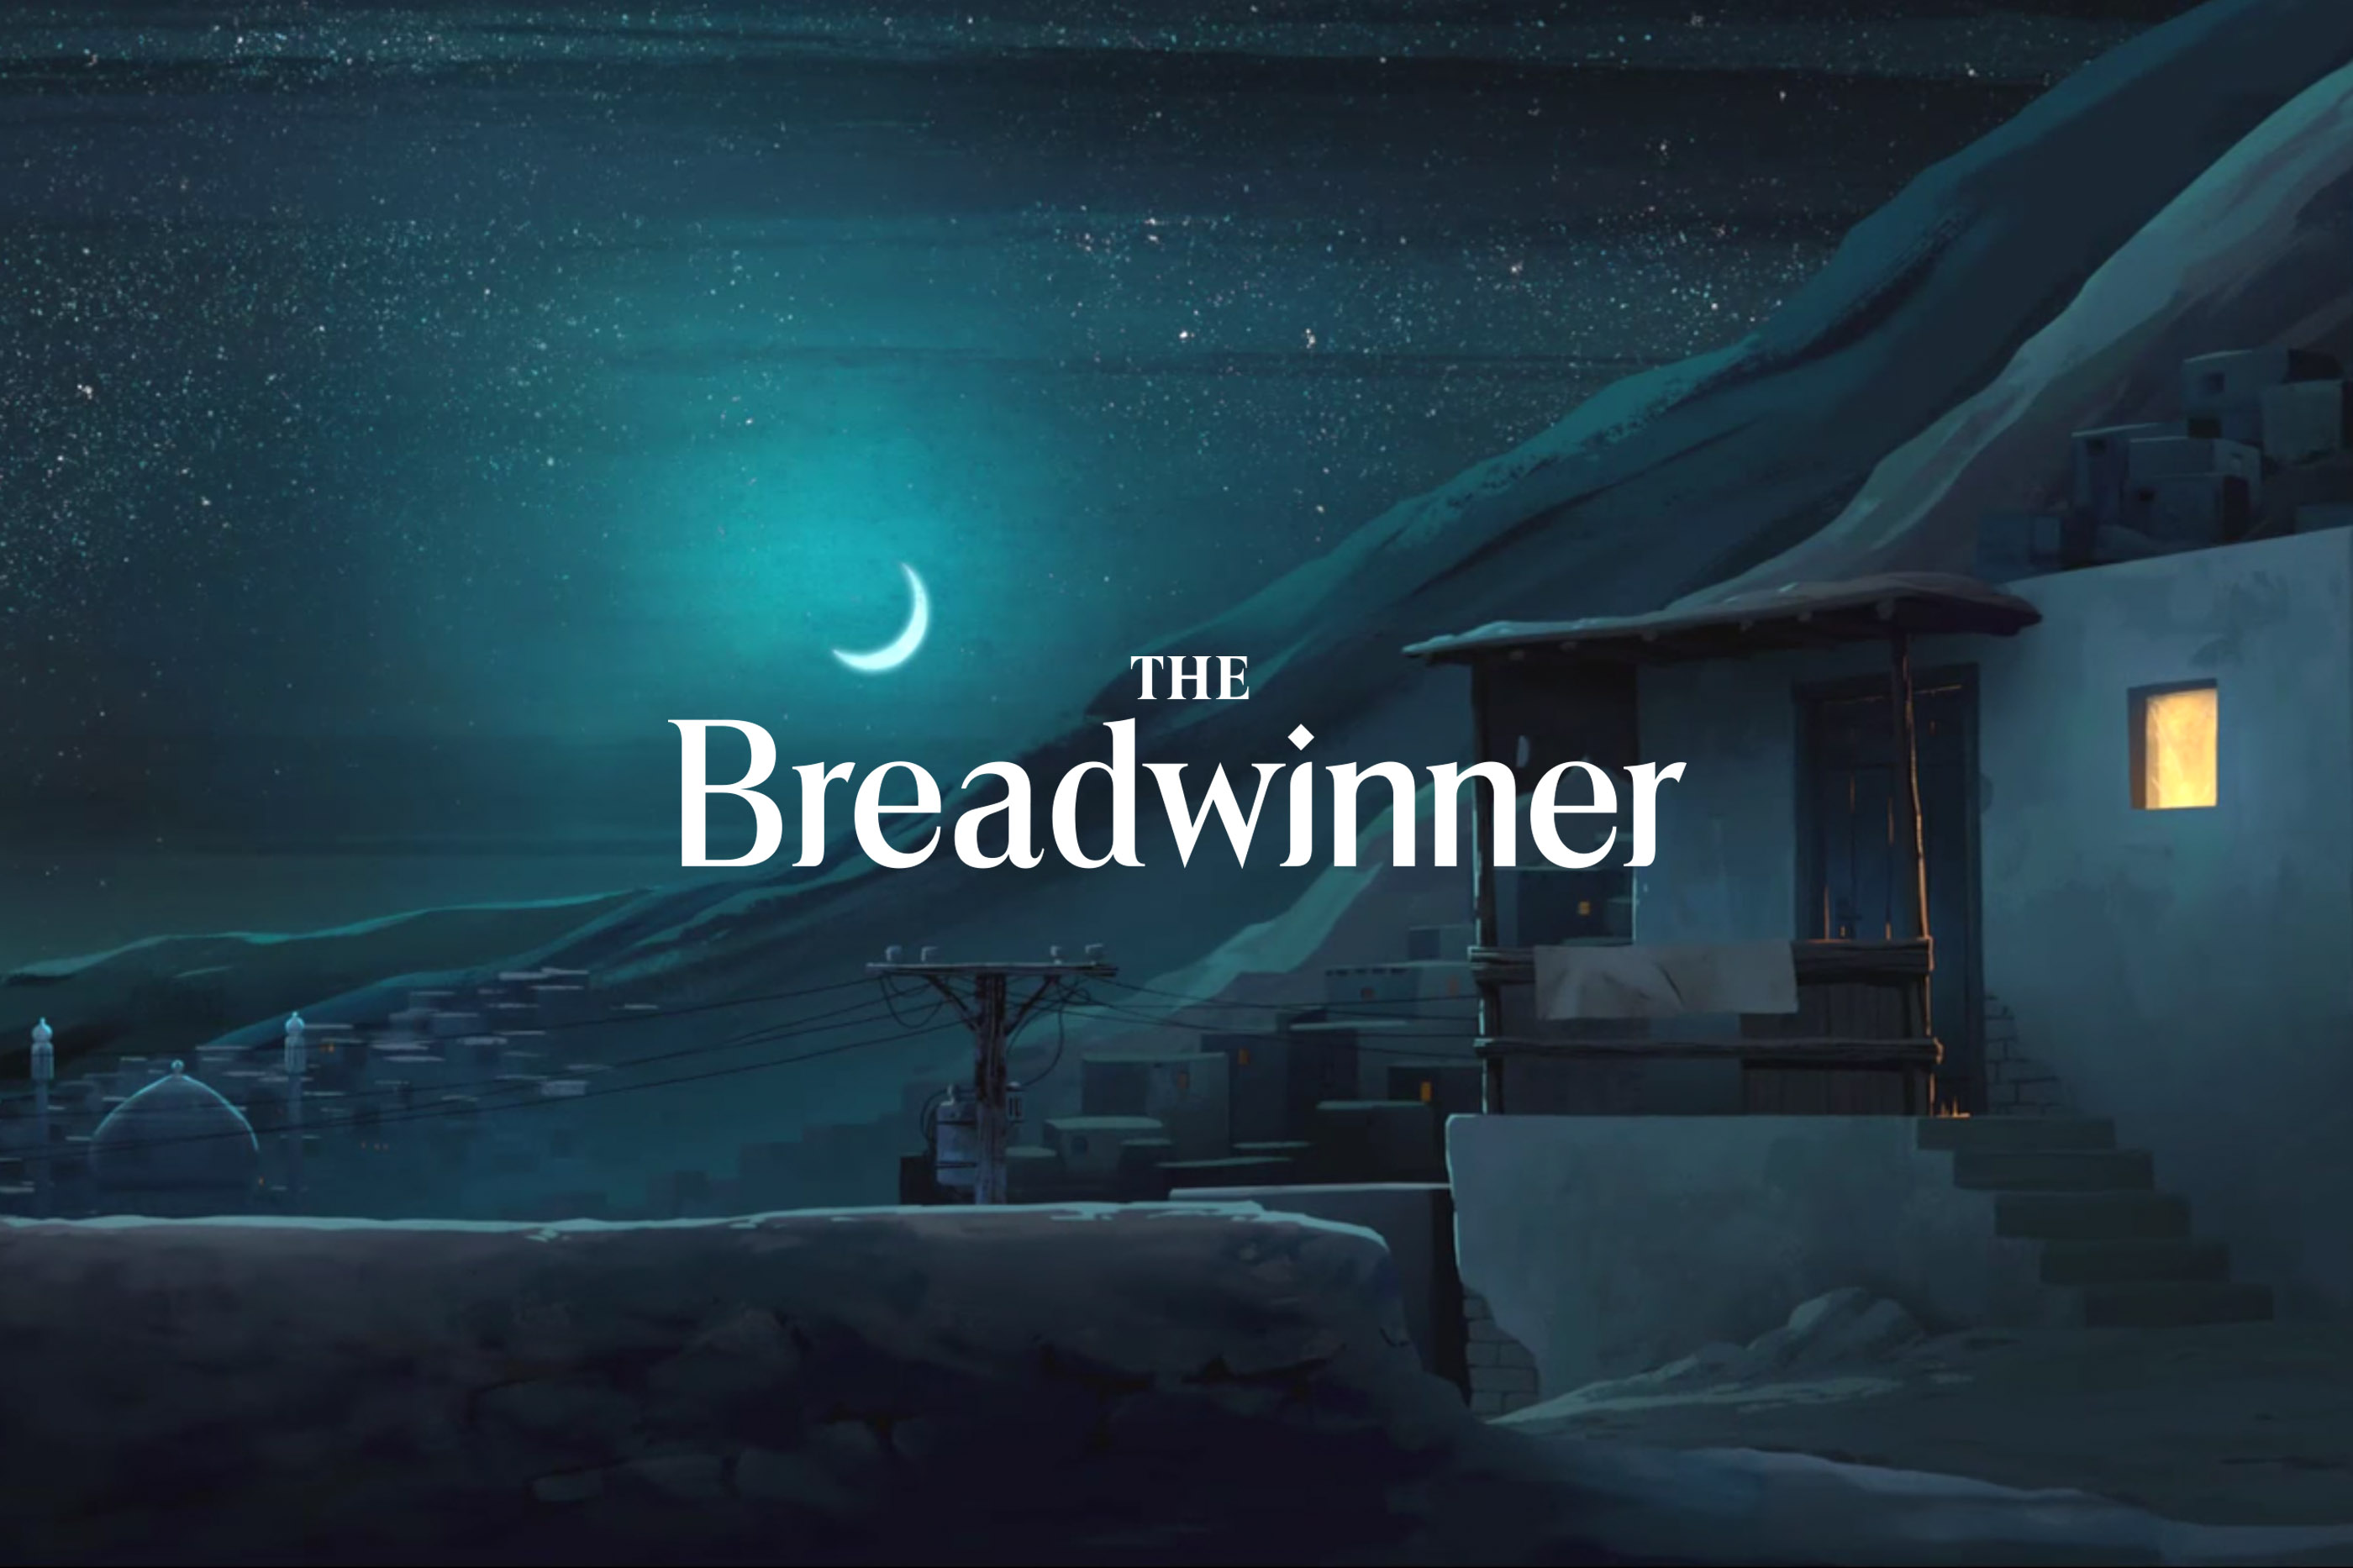 Cover image: The Breadwinner